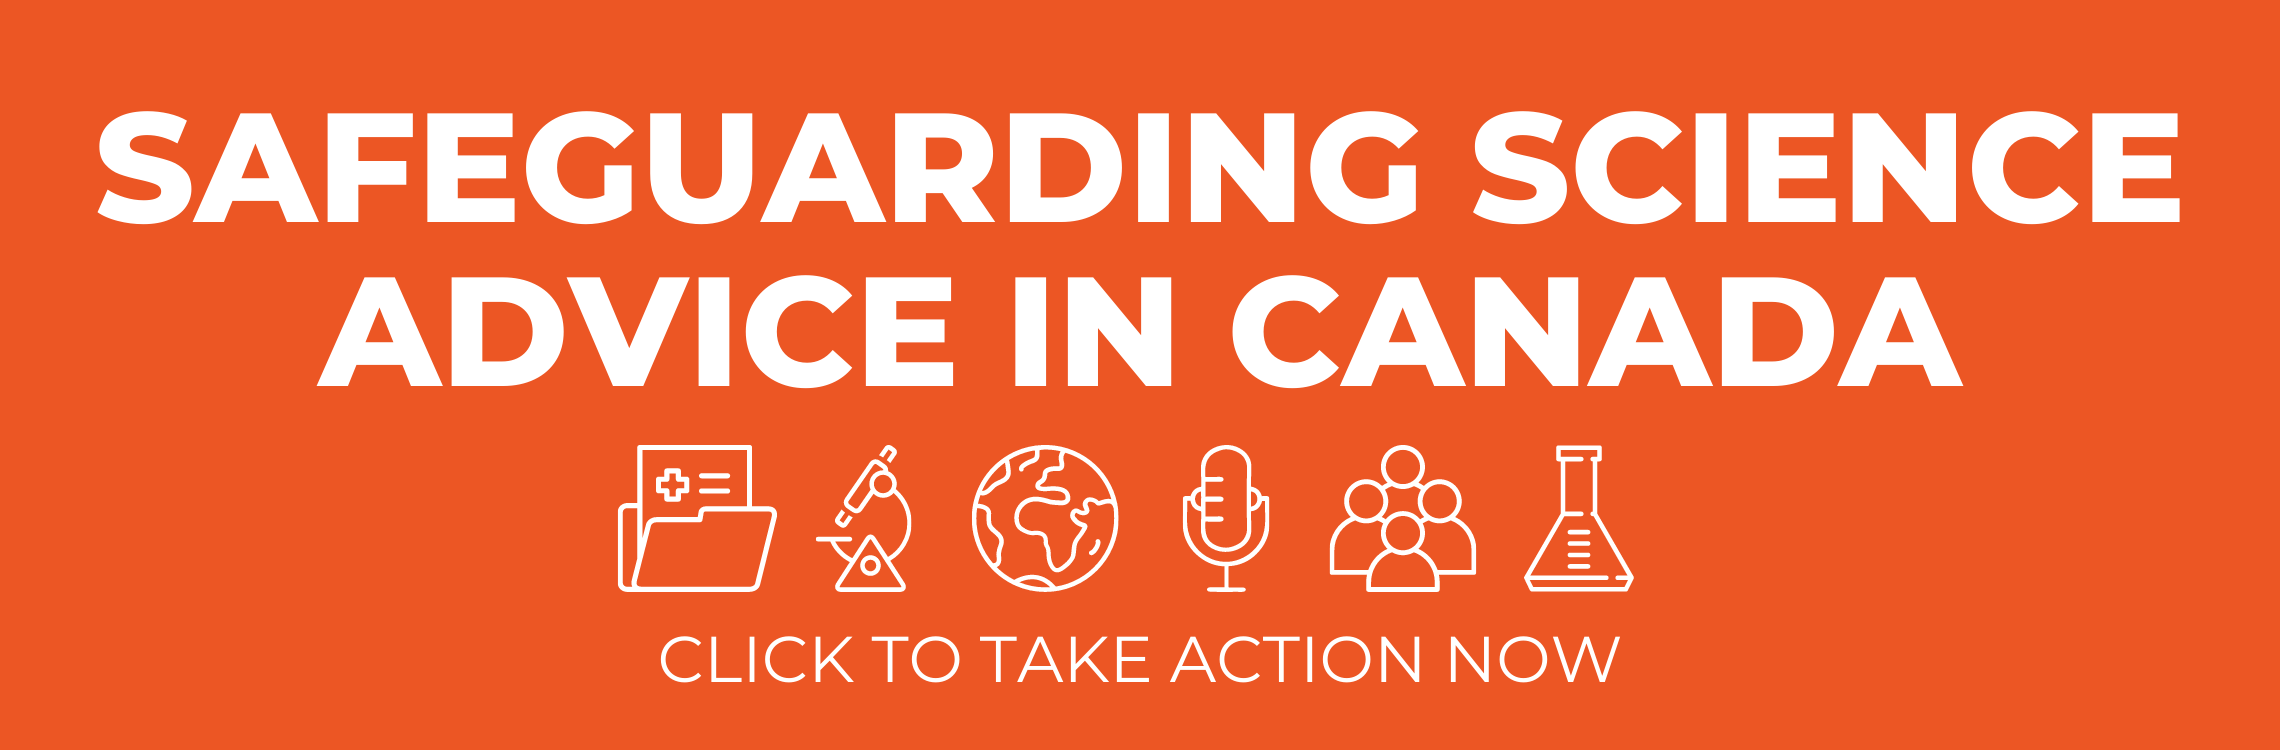 "The words ""Safeguarding Science Advice in Canada"" in large block letters above six white icons of a medical file, a microscope, a globe, a microphone, a group of people, and a beaker. Below those symbols are the words ""click to take action"". All the text and icons are white displayed on an orange background."